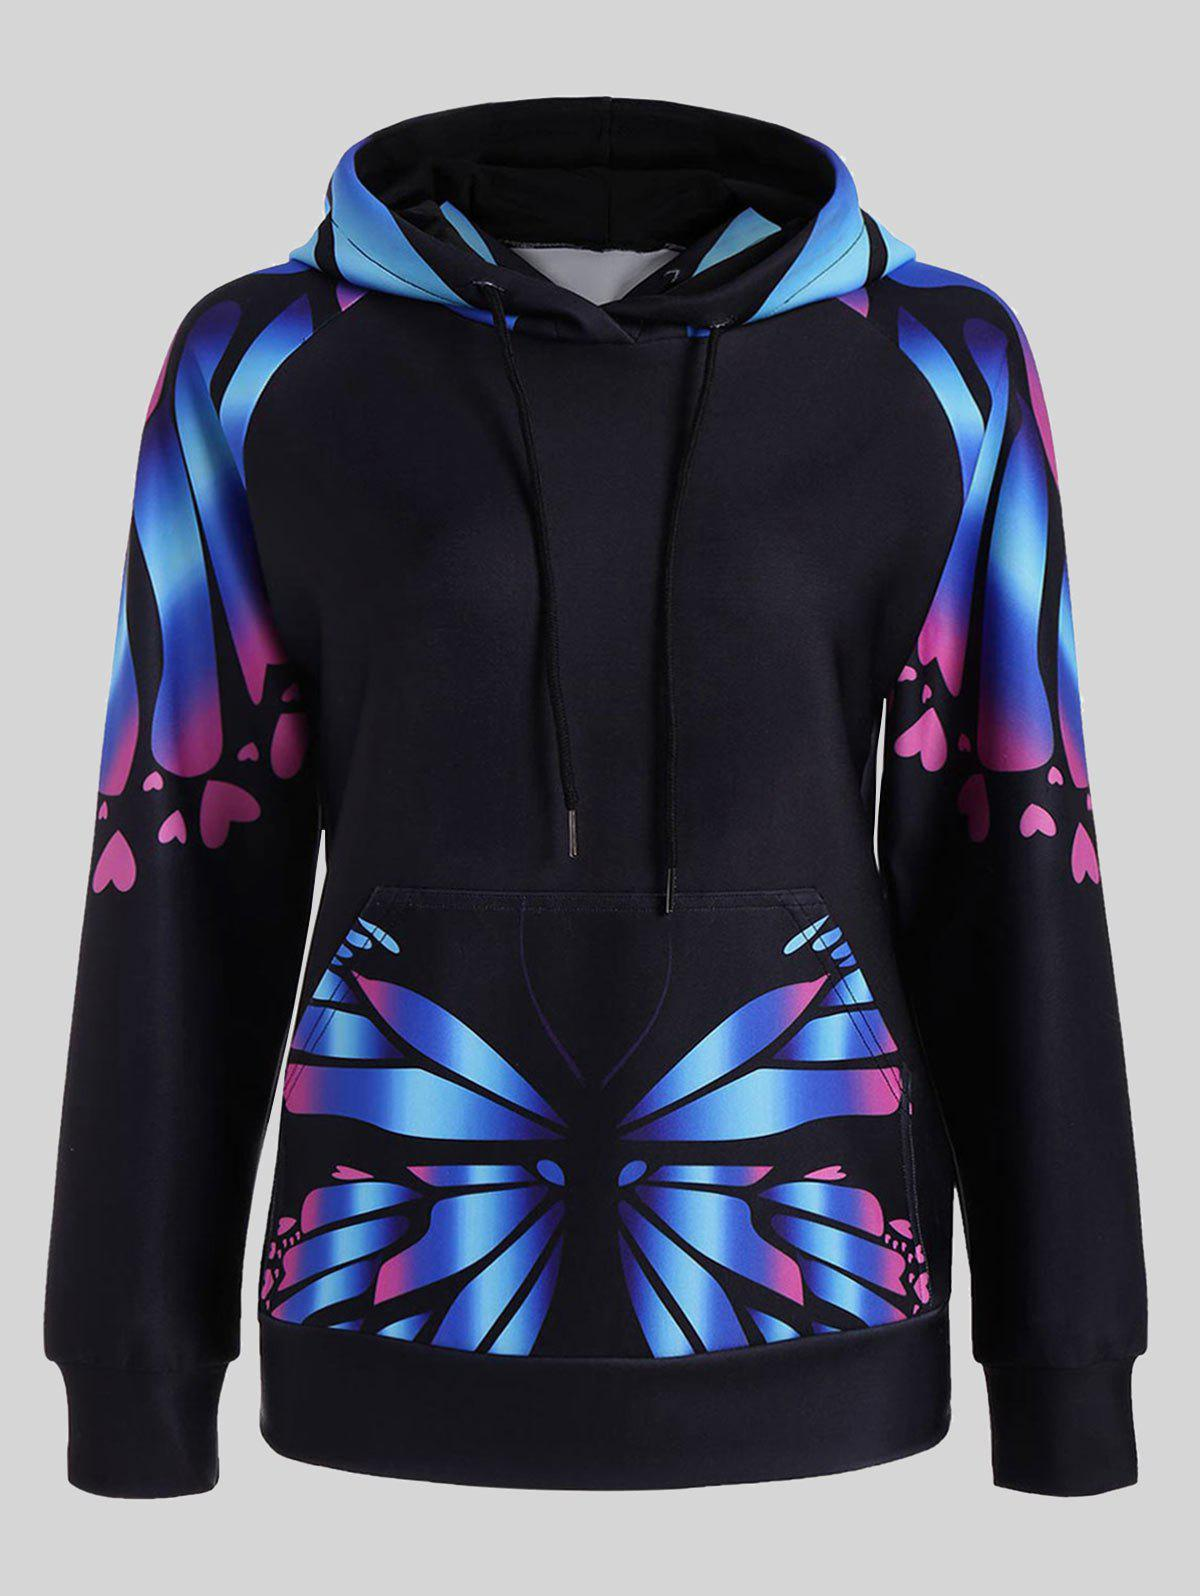 Plus Size Butterfly Print Kangaroo HoodieWOMEN<br><br>Size: 2XL; Color: BLUE; Material: Polyester,Spandex; Shirt Length: Regular; Sleeve Length: Full; Style: Fashion; Pattern Style: Insect,Print; Elasticity: Elastic; Season: Fall,Spring; Weight: 0.5000kg; Package Contents: 1 x Hoodie;